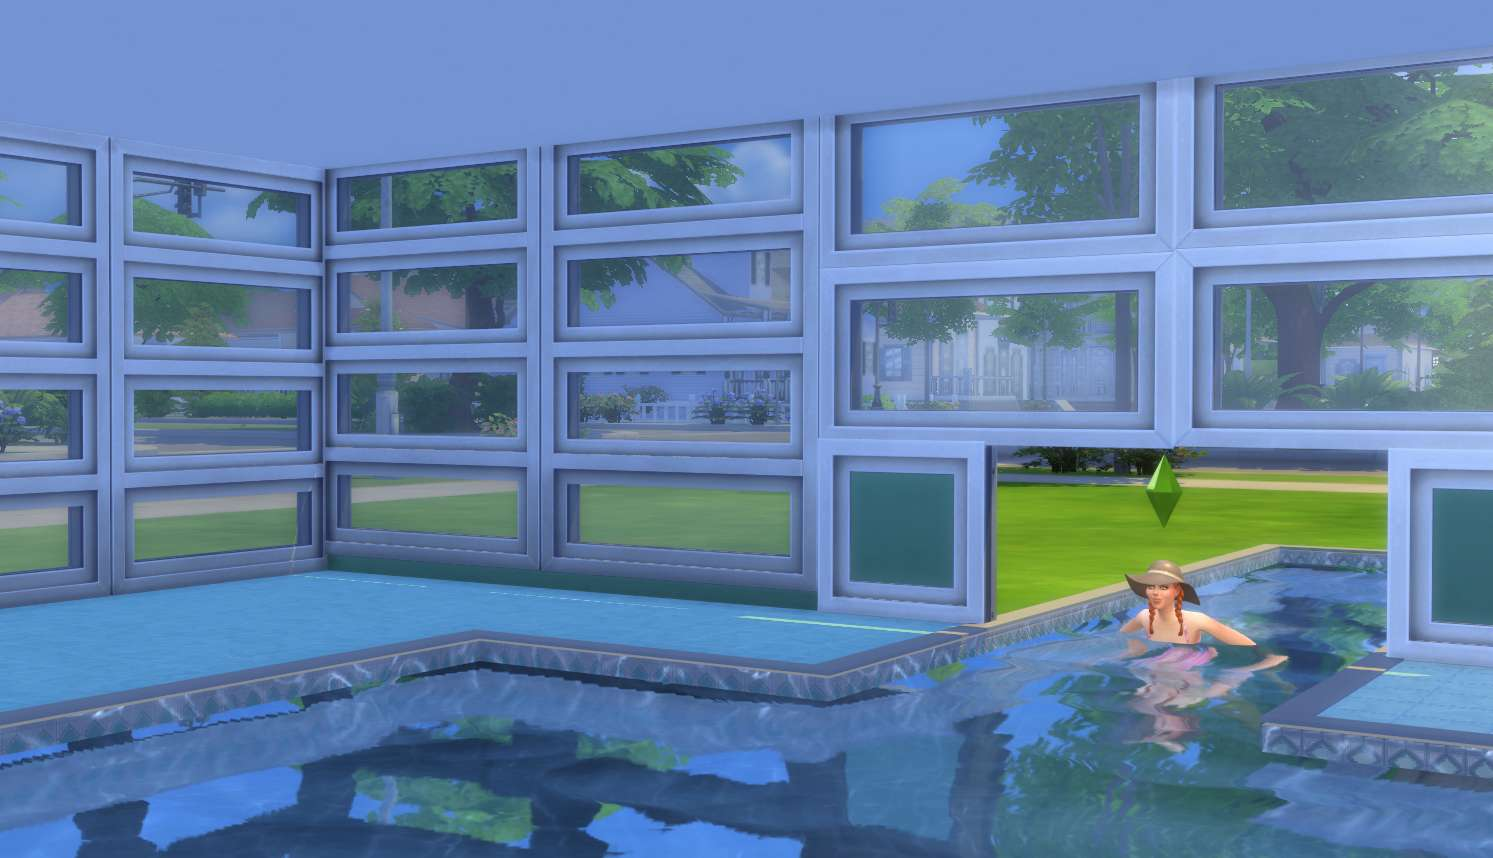 sims 4 building how tos sims can then swim under the window into